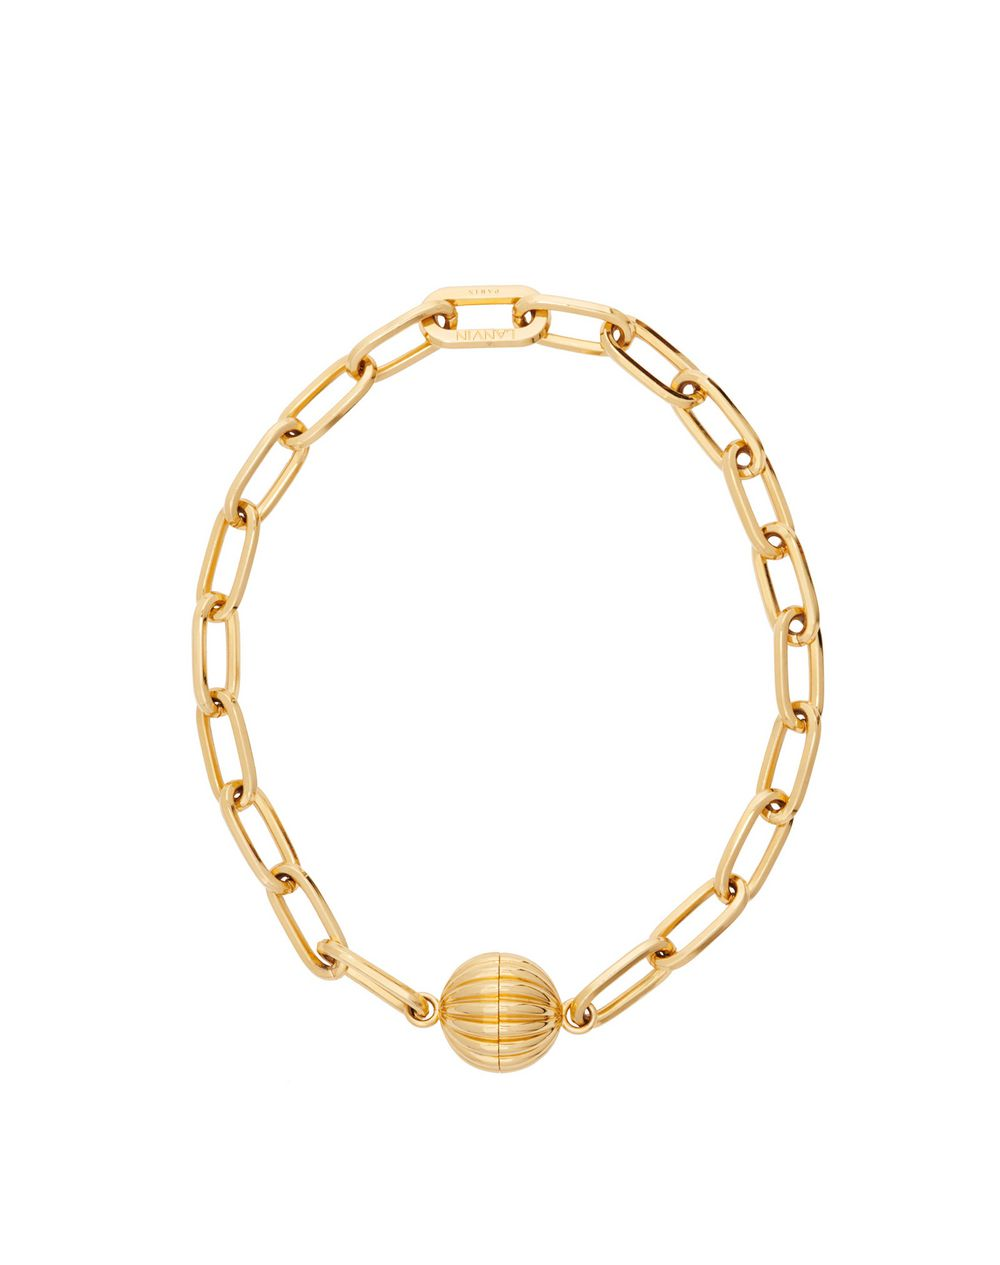 ARPÈGE NECKLACE - Lanvin